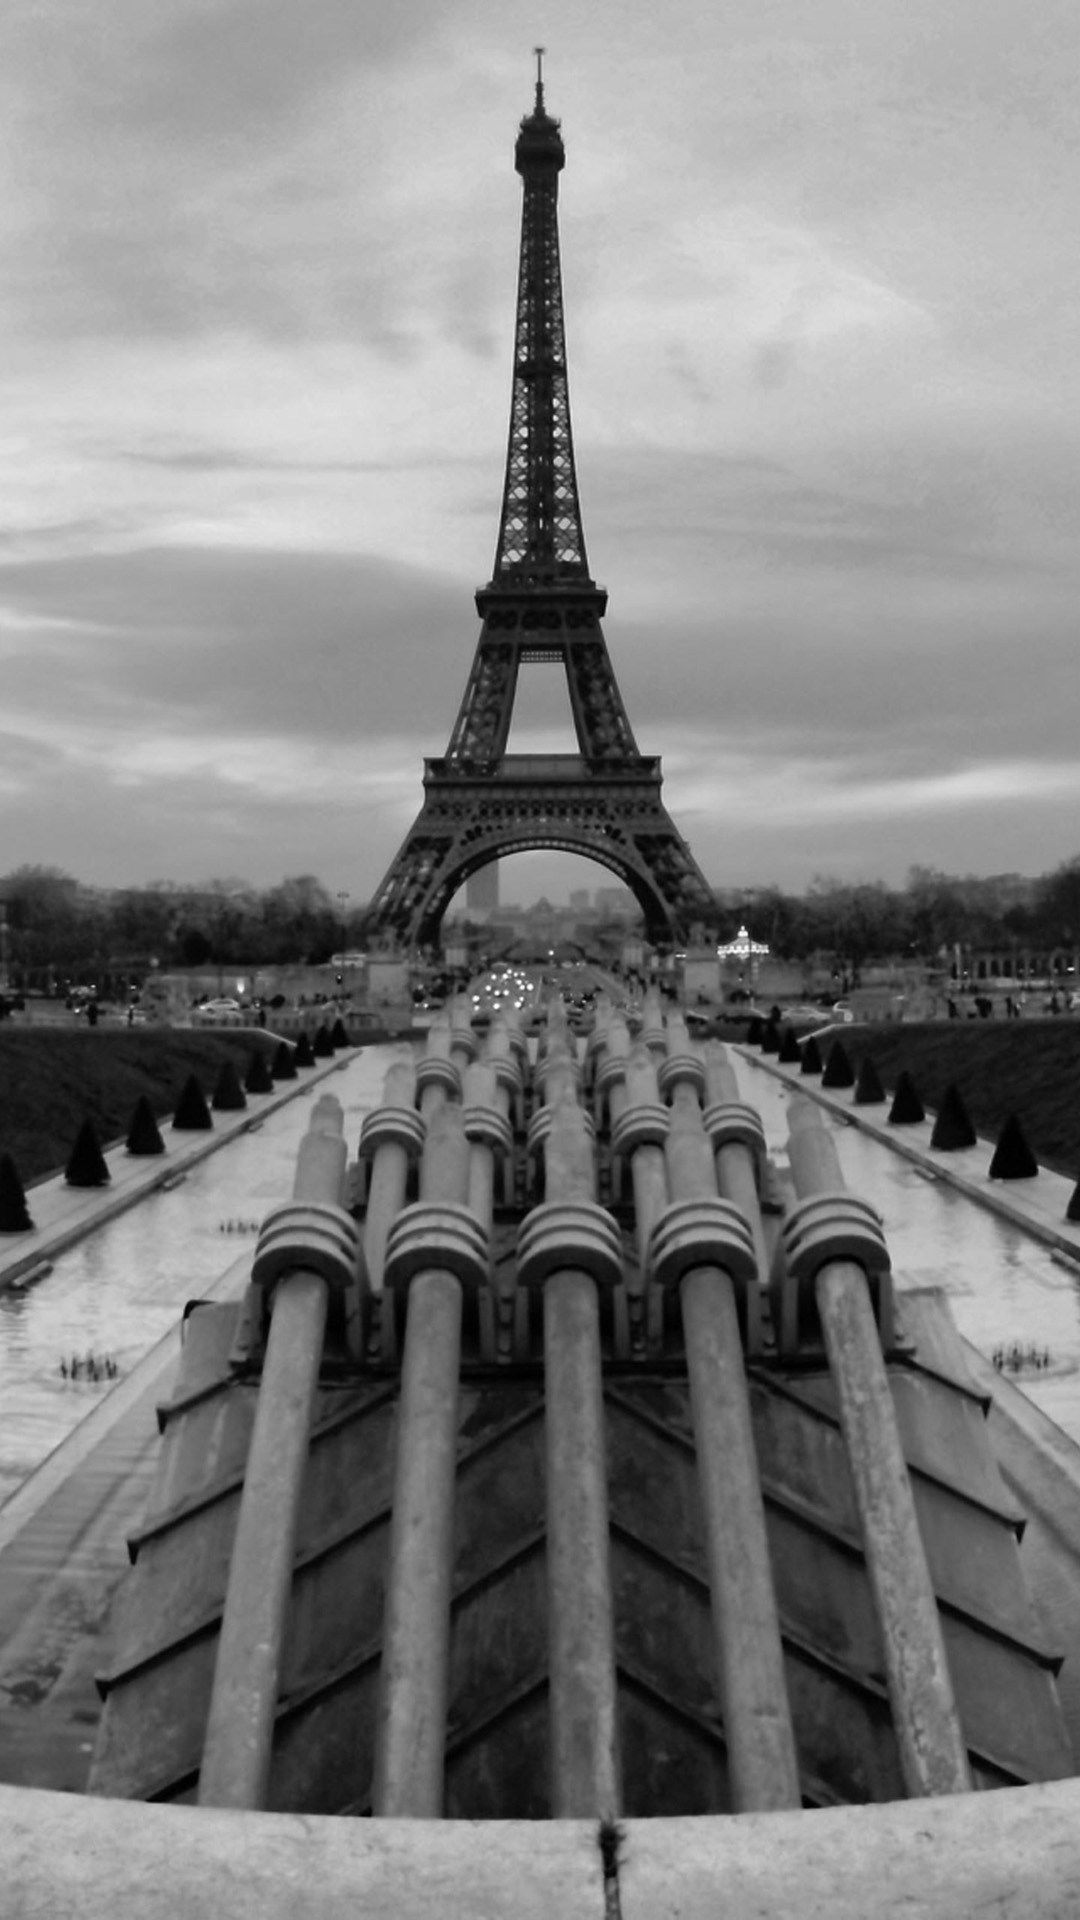 Eiffel Tower Paris Black White Hd Wallpaper Iphone Ololoshenka